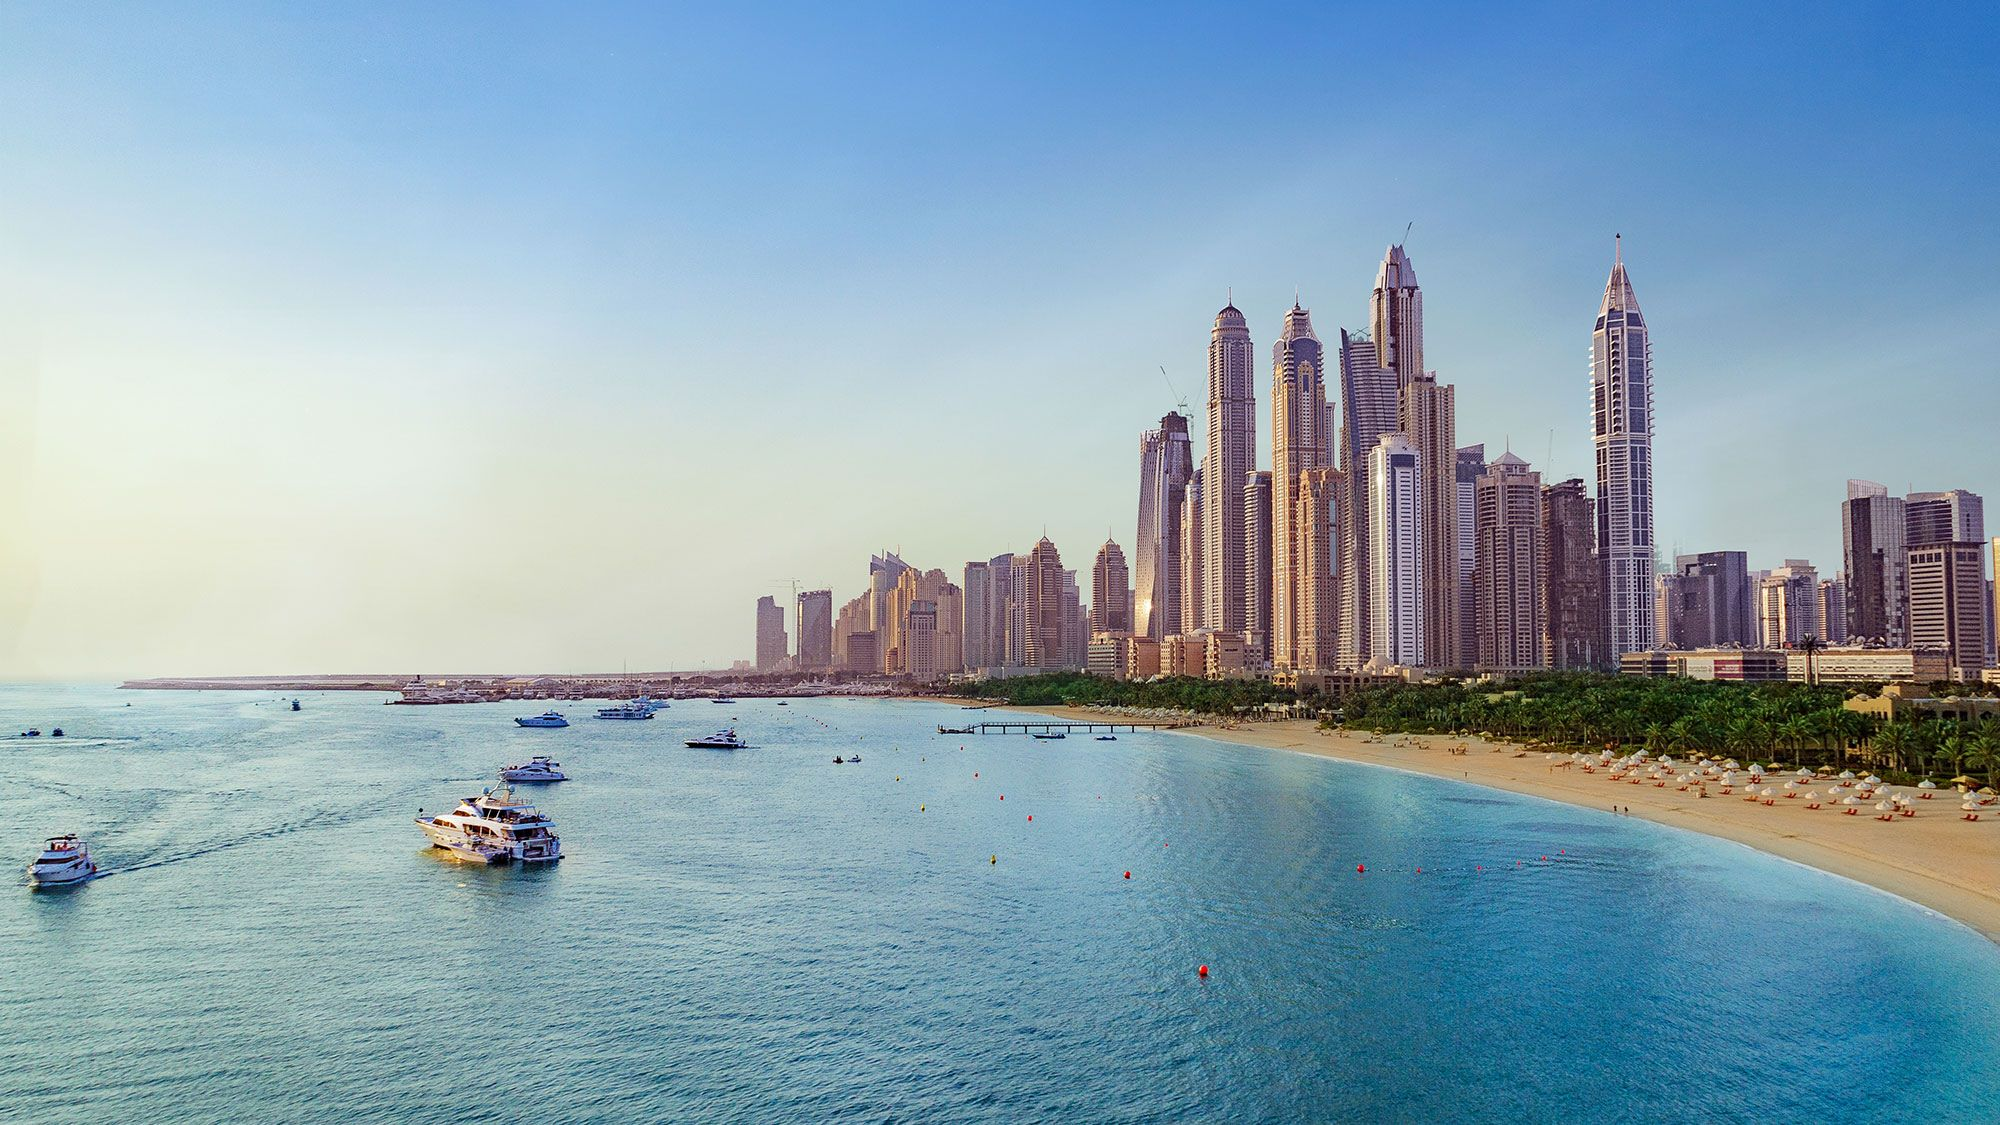 Beach and Skyline of Dubai Marina